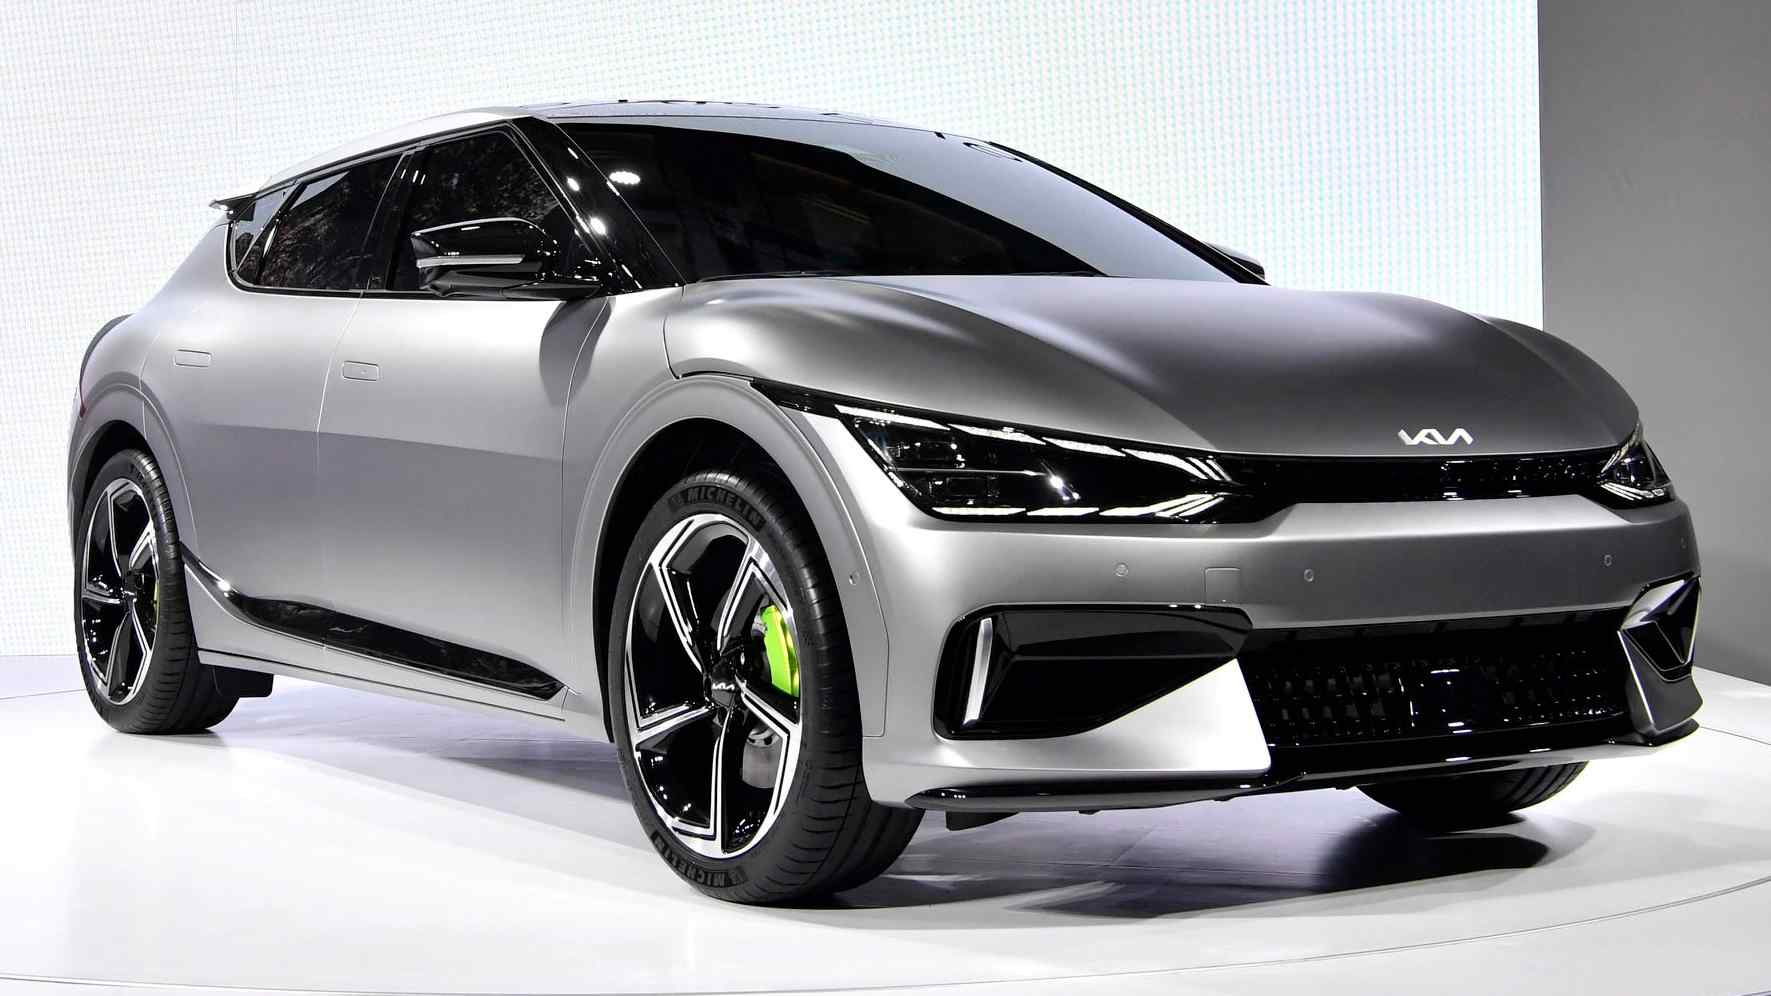 Kia EV6 GT electric crossover packs 585 hp, 0-100 kph time of 3.5 seconds and 260 kph top speed- Technology News, Firstpost